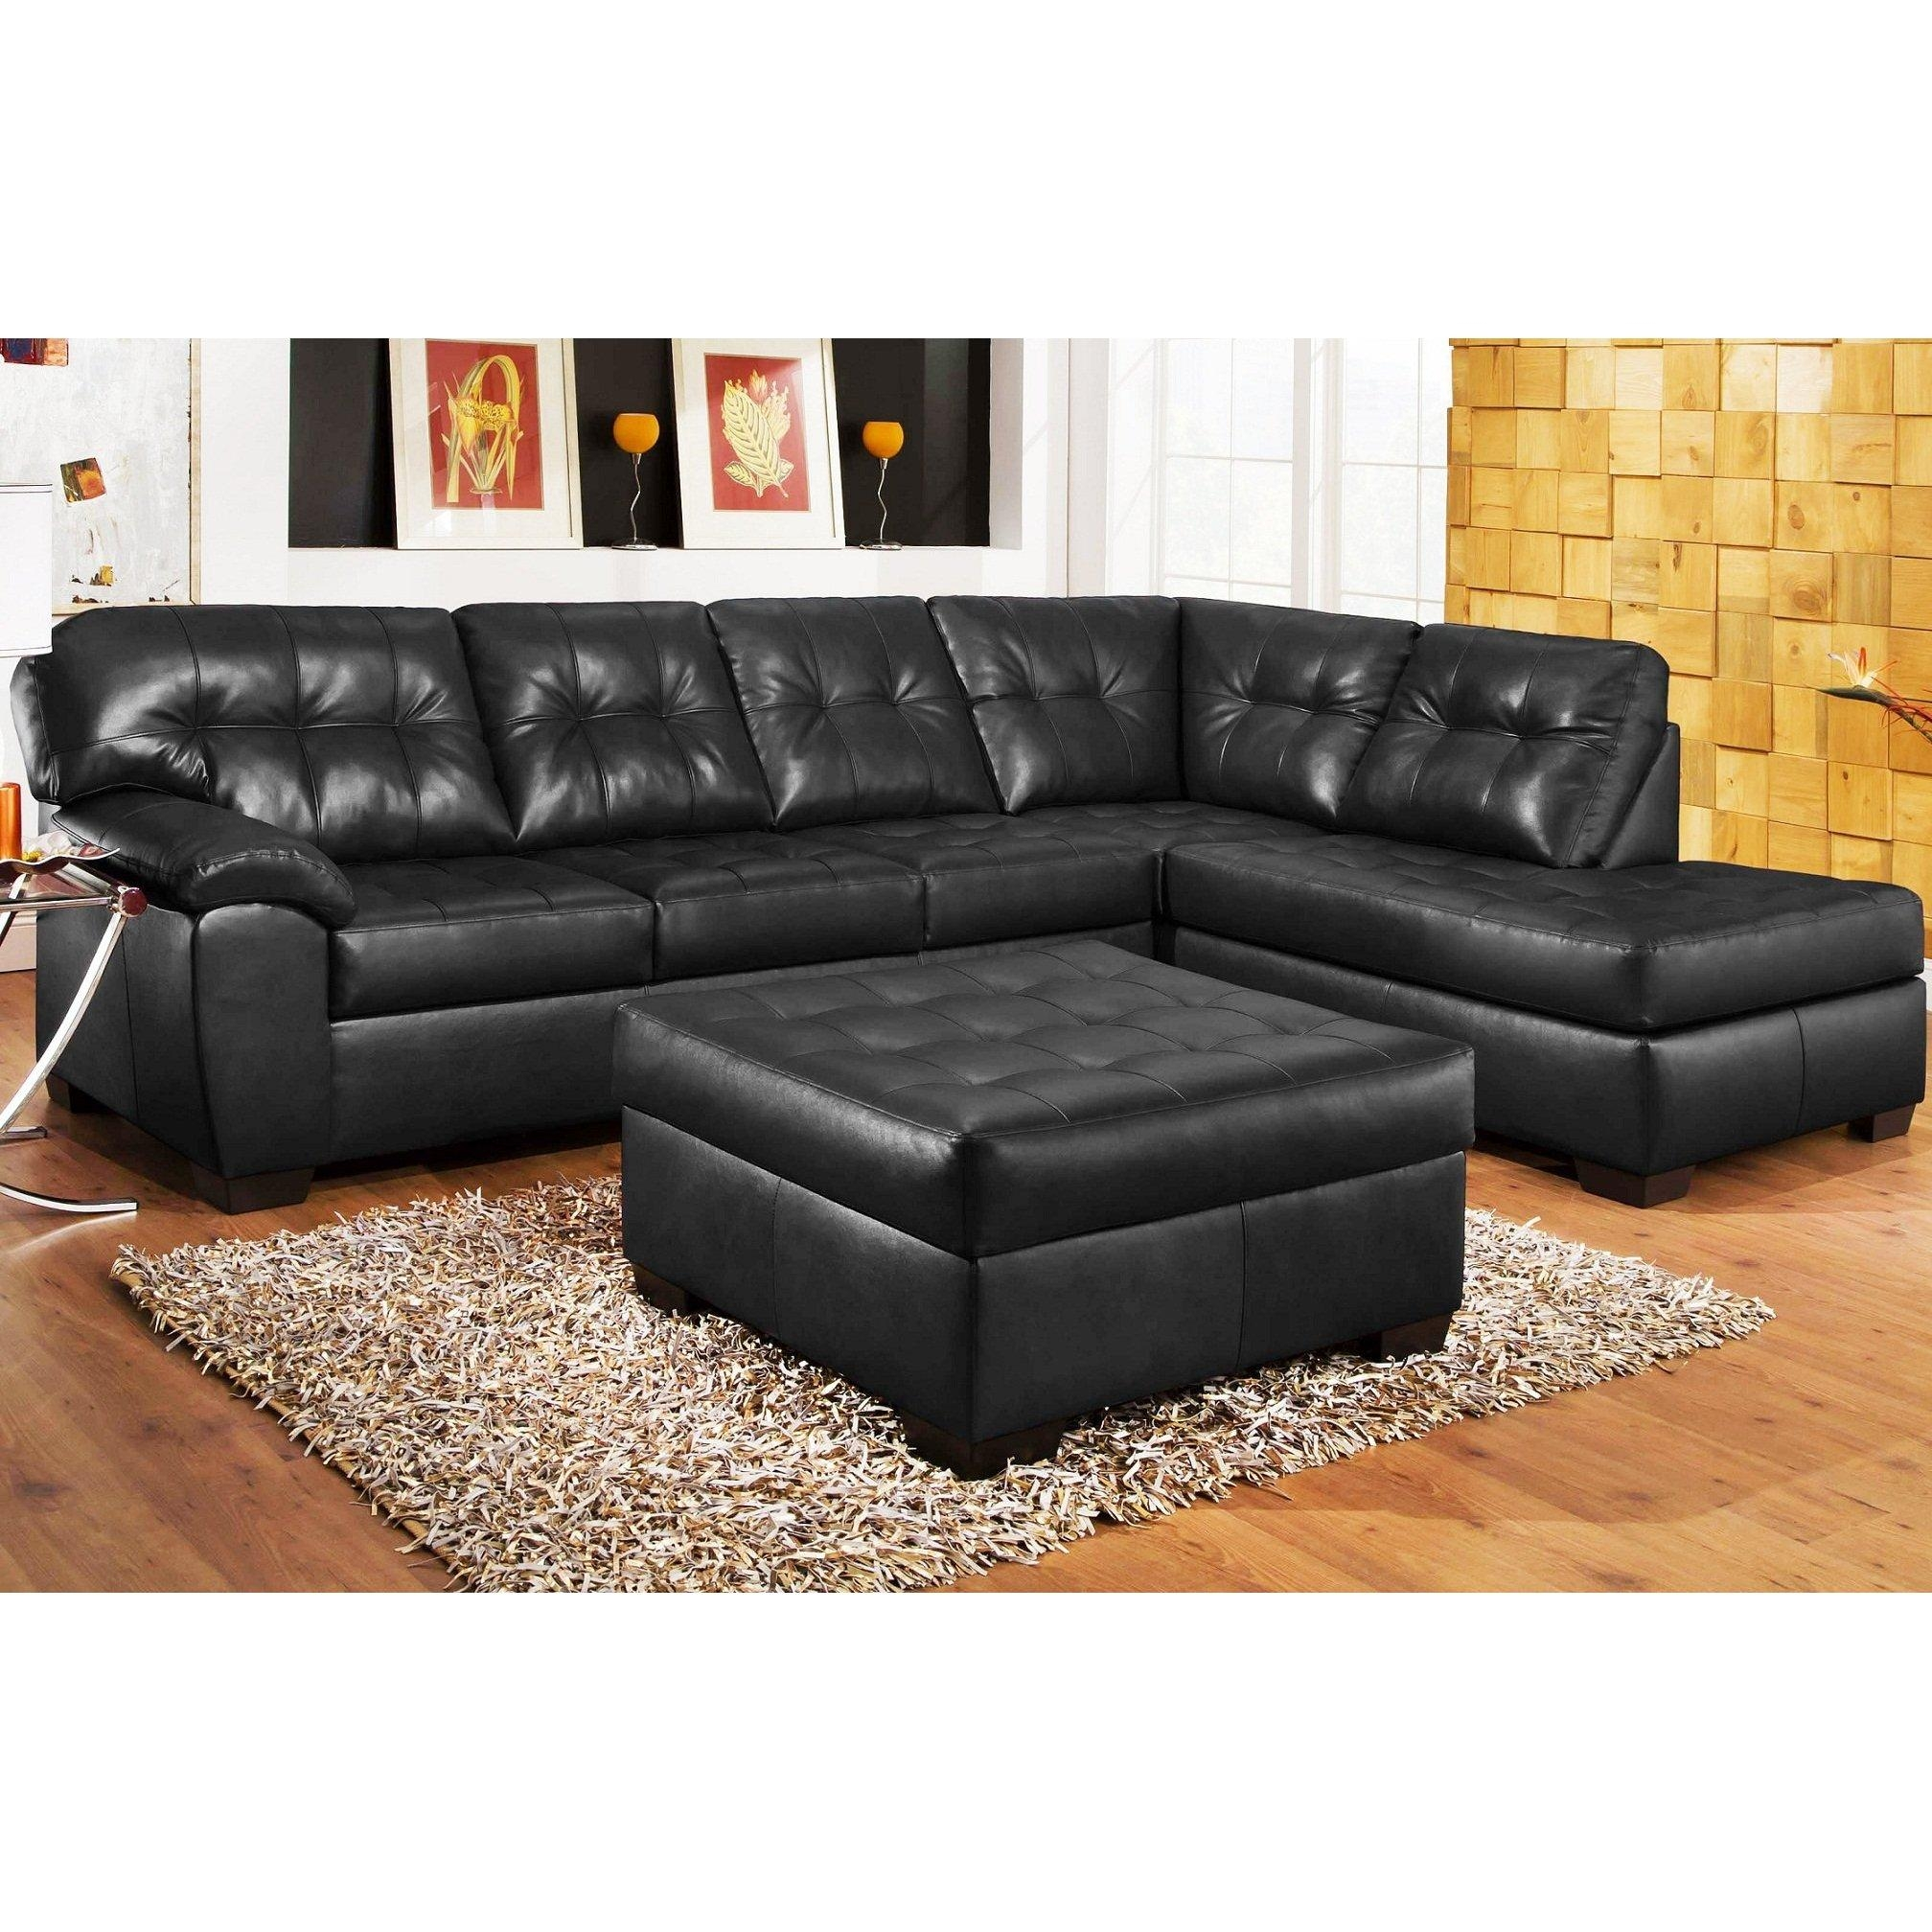 Sofas : Awesome Small Grey Sectional Small Leather Sectional With Black Leather Sectional Sleeper Sofas (View 5 of 21)